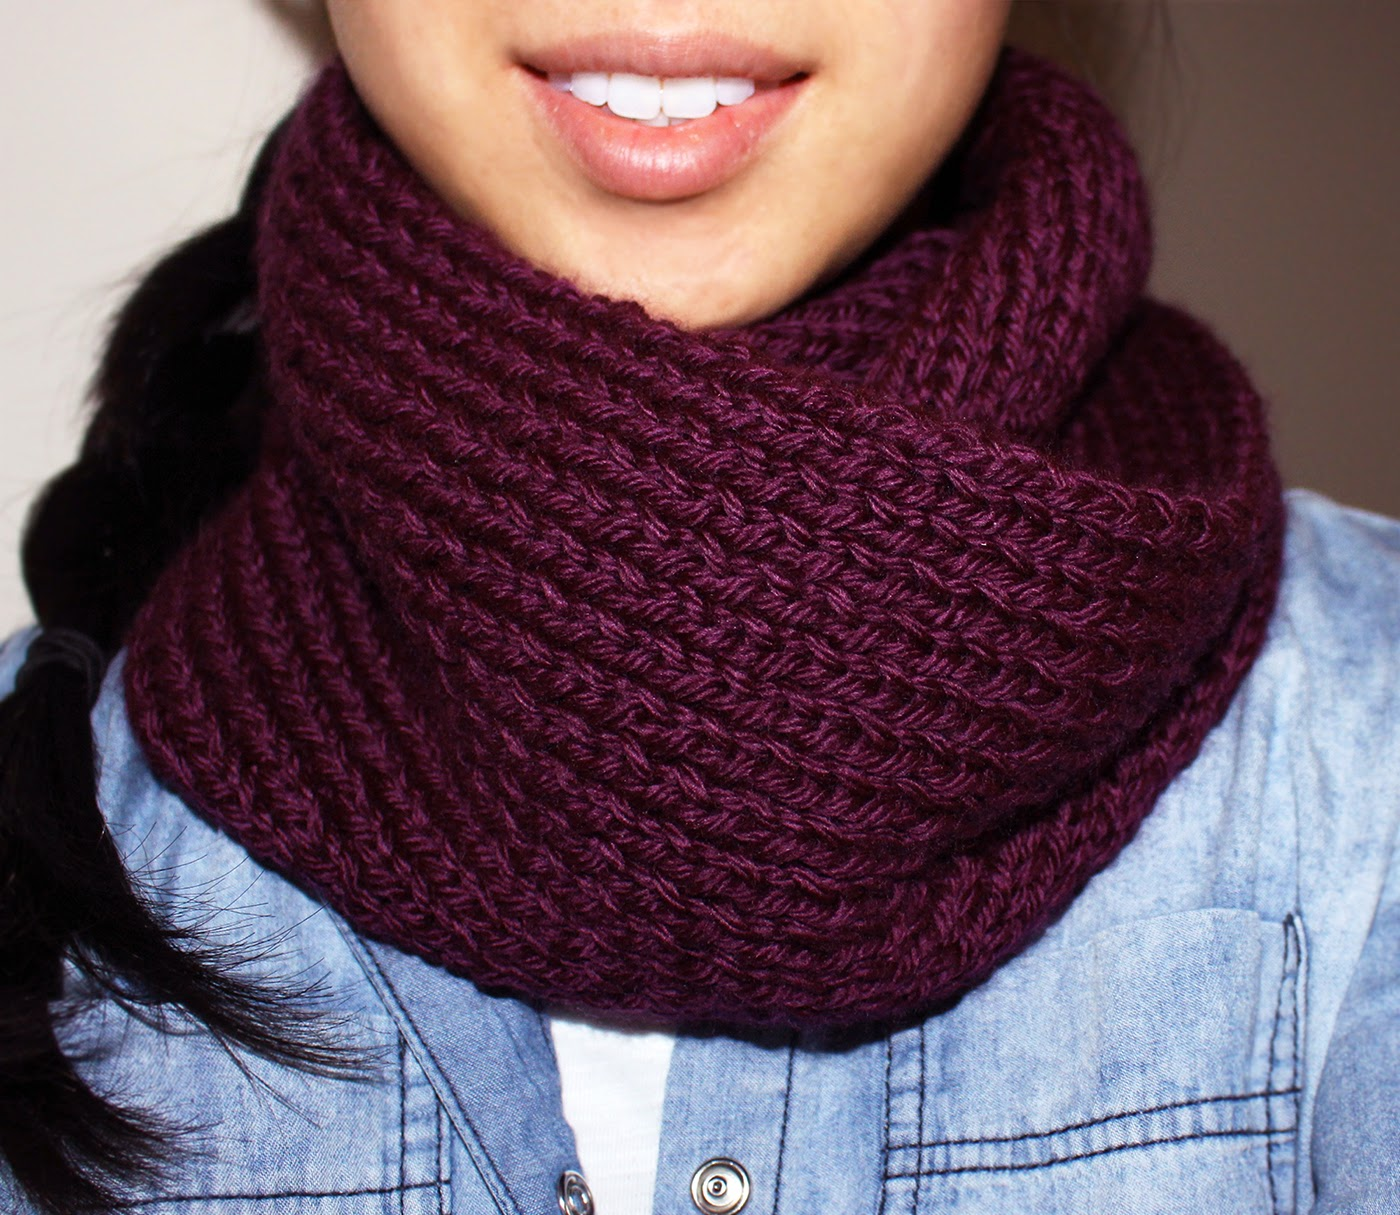 Circle Scarf Knitting Patterns : Purllin: Acai Infinity Circle Scarf [free knitting pattern]